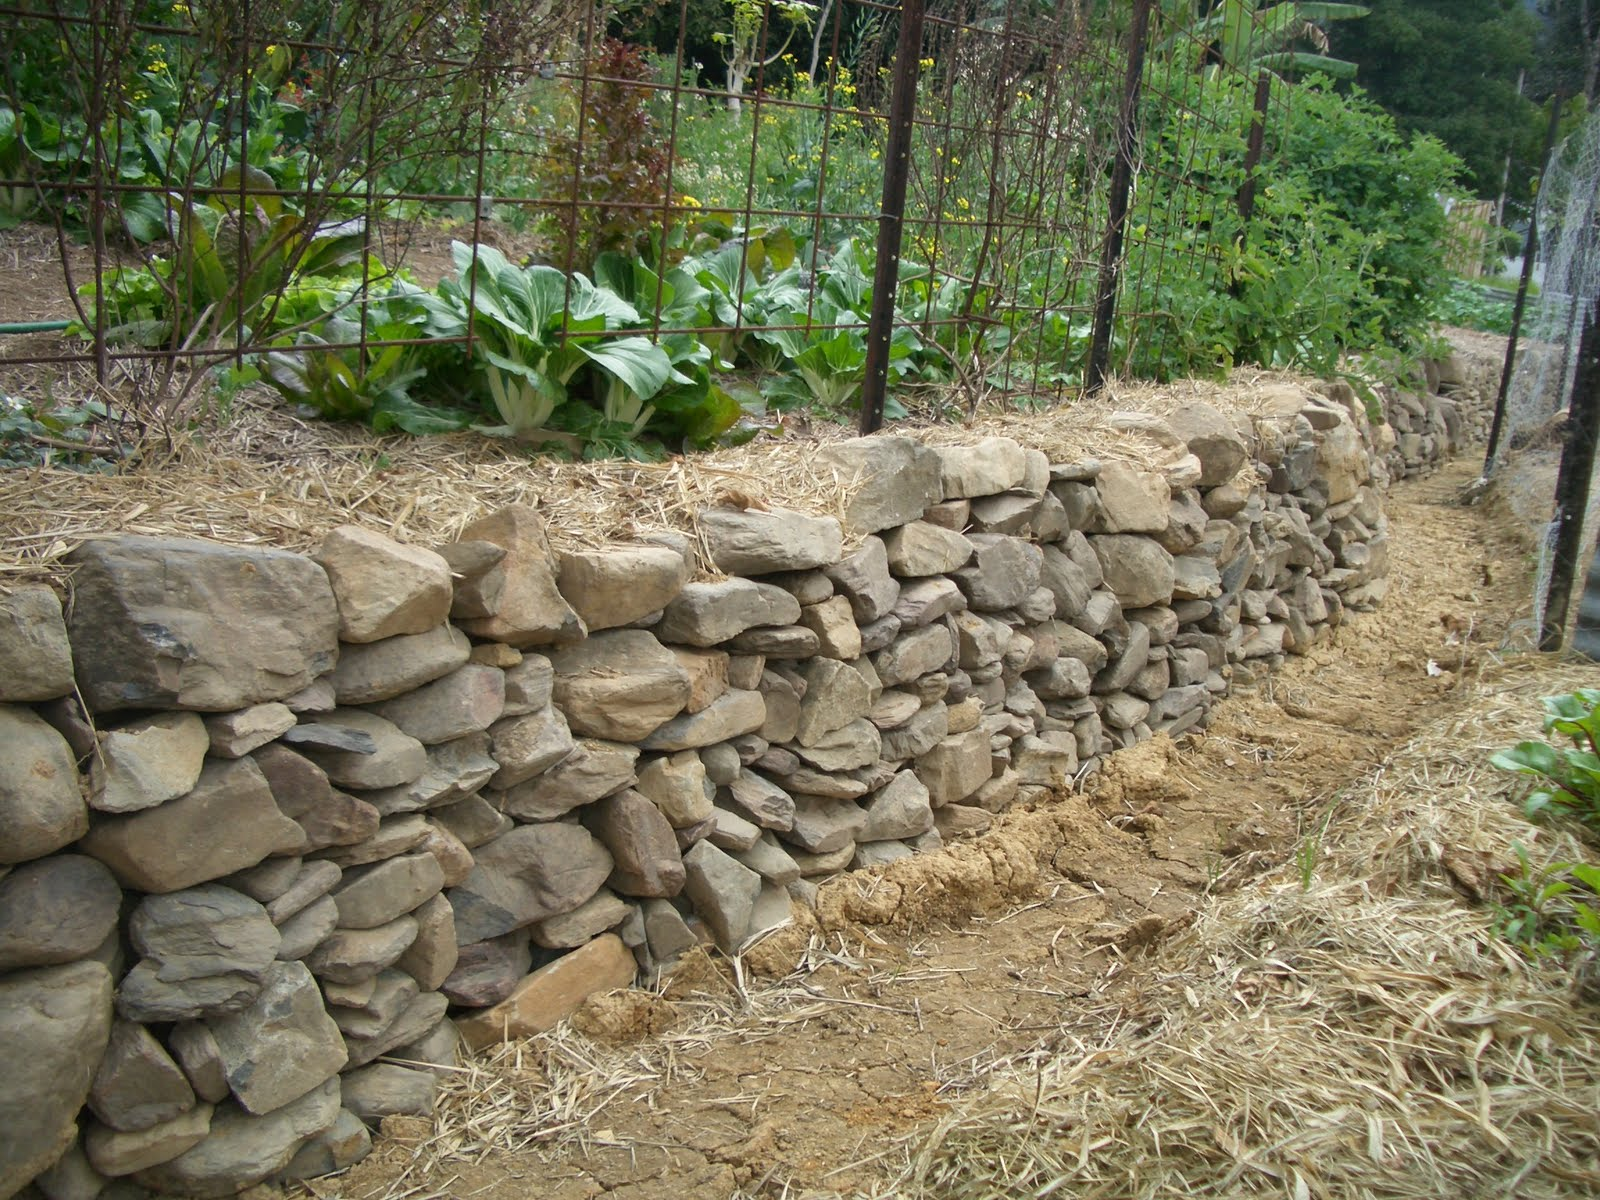 Awesome This Wall Stops The Erosion Of The Higher Swale Wall And Stops Garden Beds  From Being Washed Into The Swale. Water Can Still Seep Through The Rock Wall  Into ...